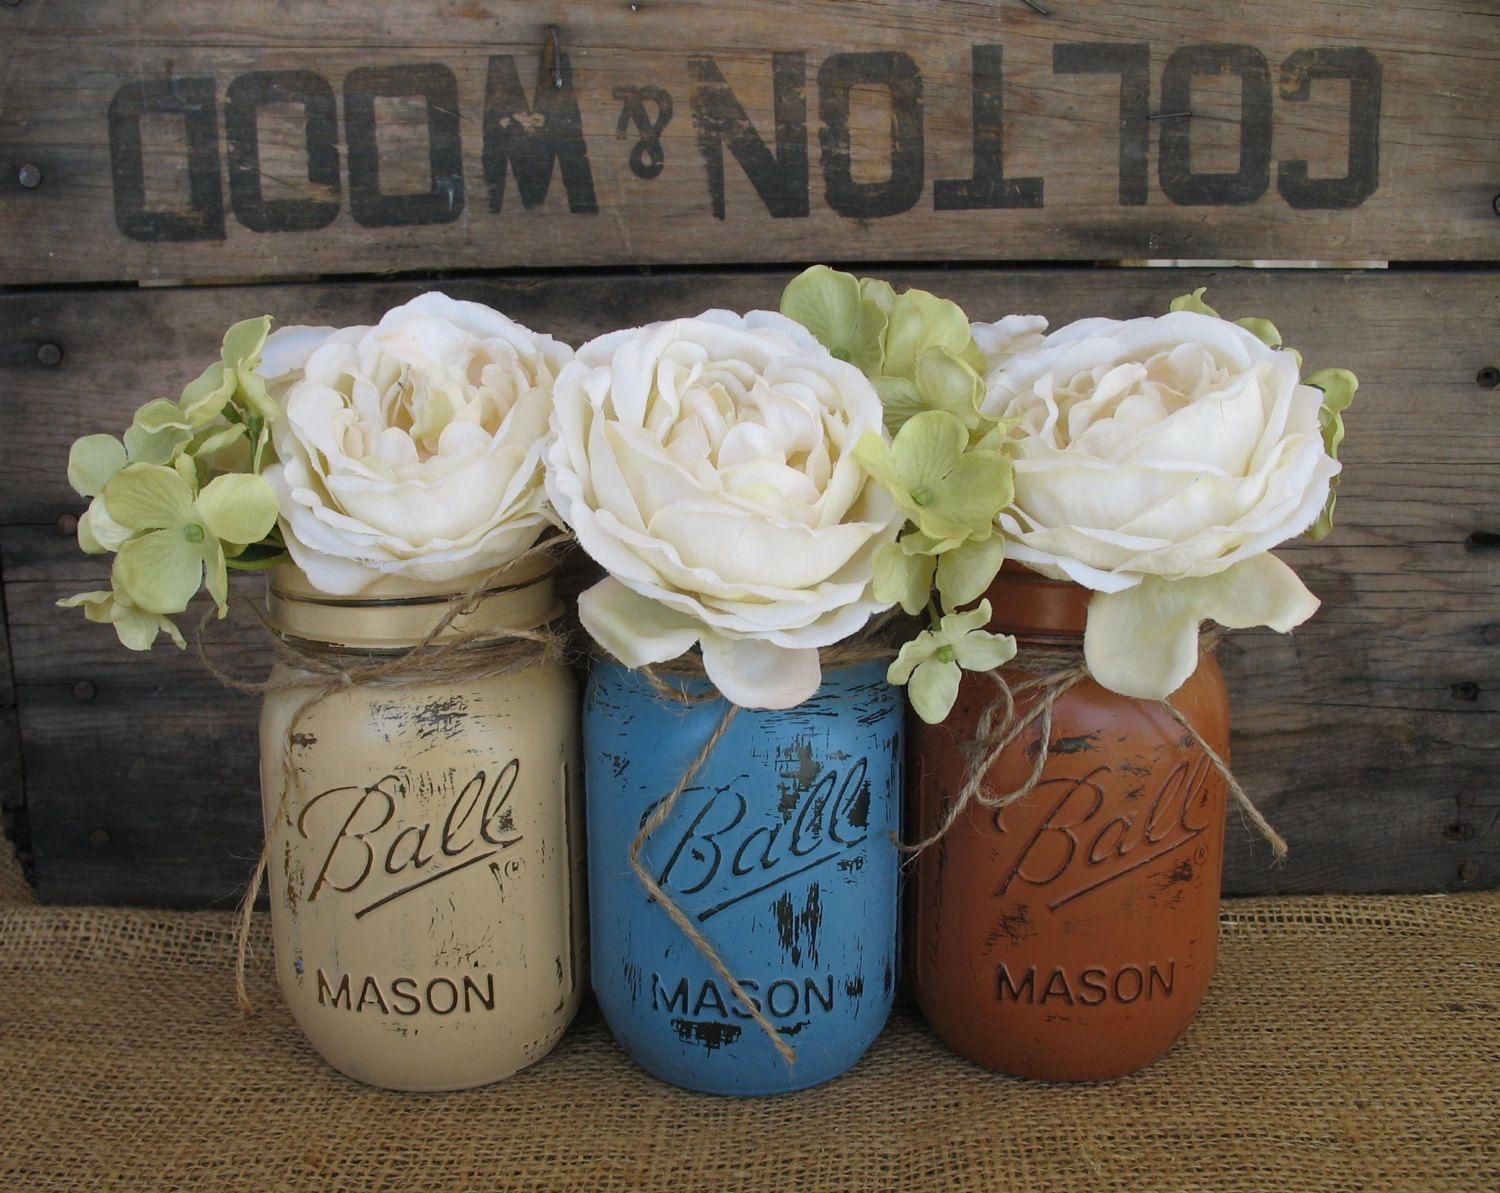 Mason Jar Wedding Centerpieces | Rustic Wedding Centerpieces Mason Jars